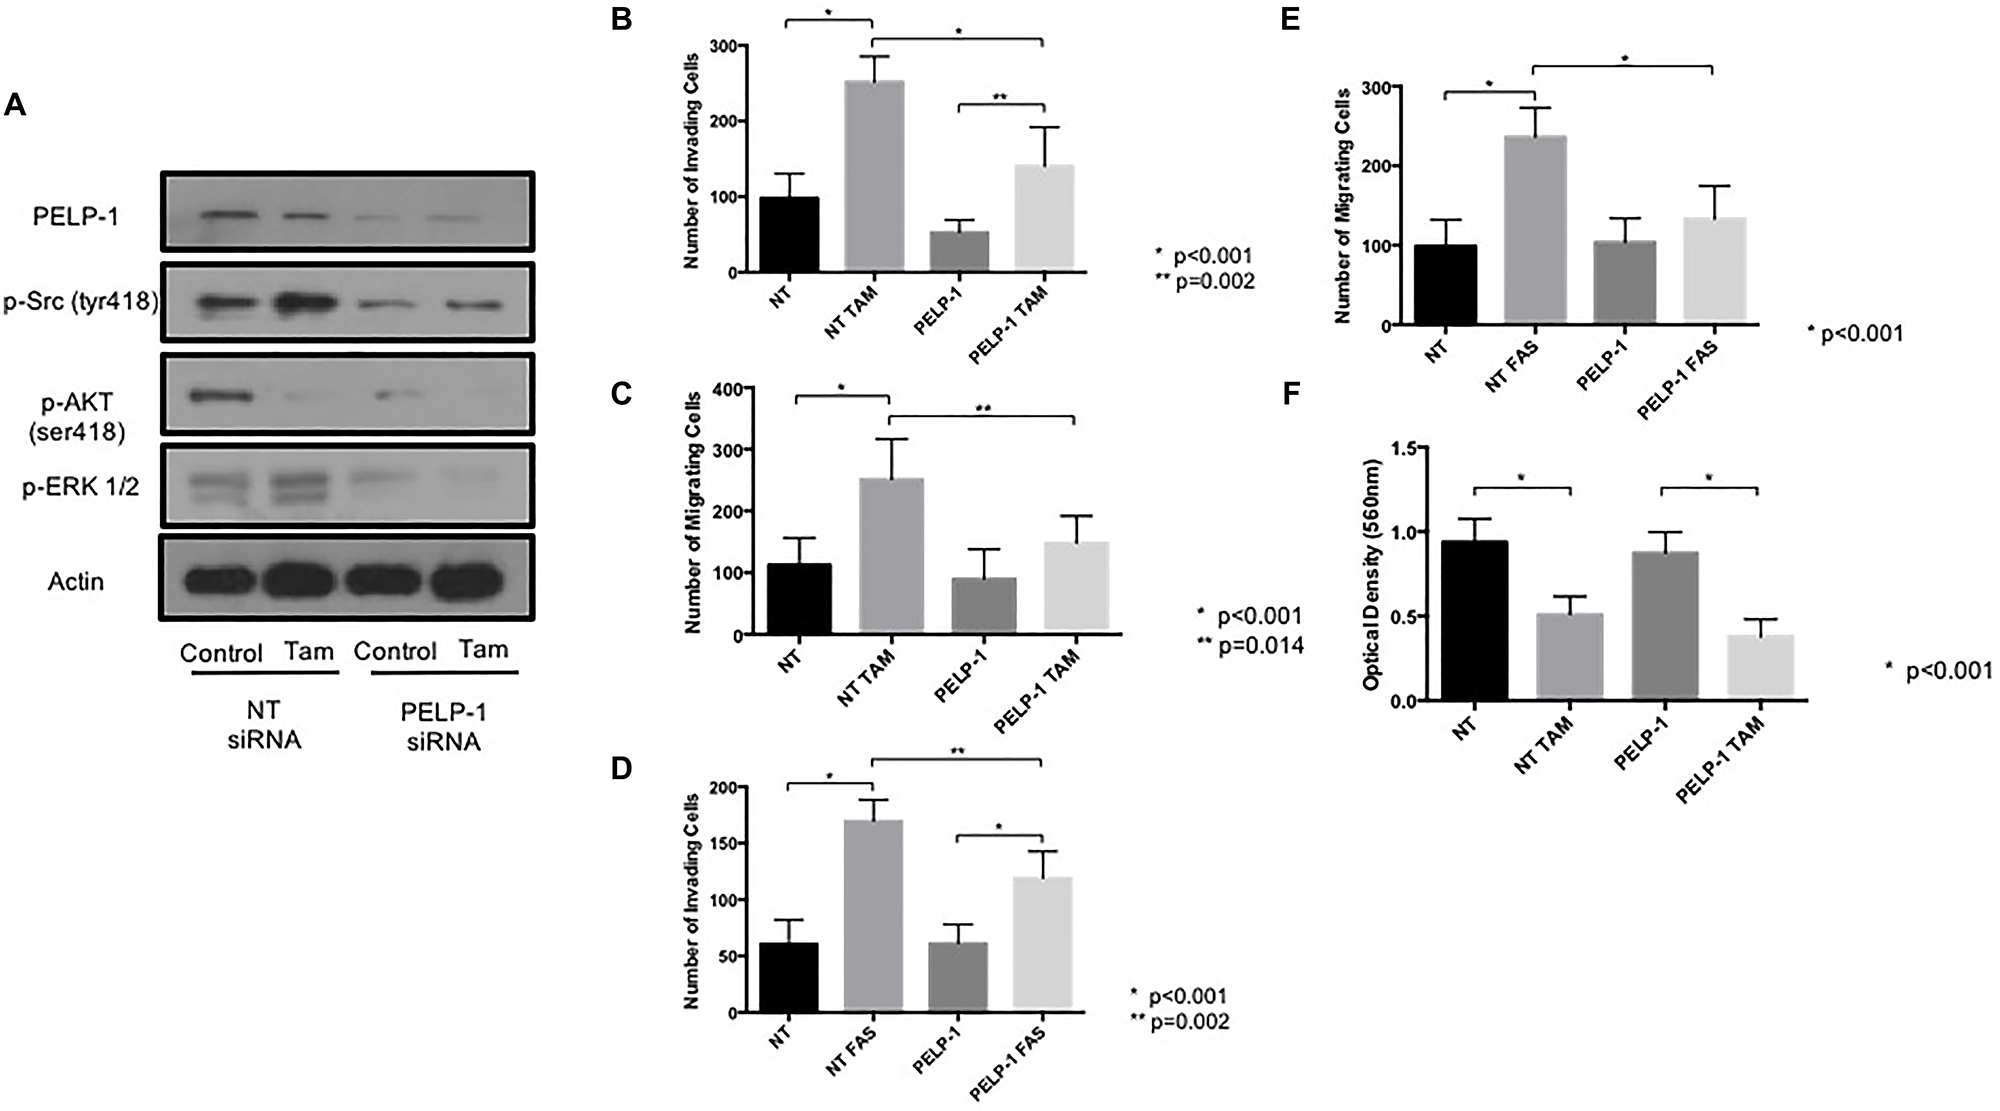 PELP1 siRNA prevents tamoxifen and fulvestrant-induced pro-invasive responses in ER+ breast cancer cells.